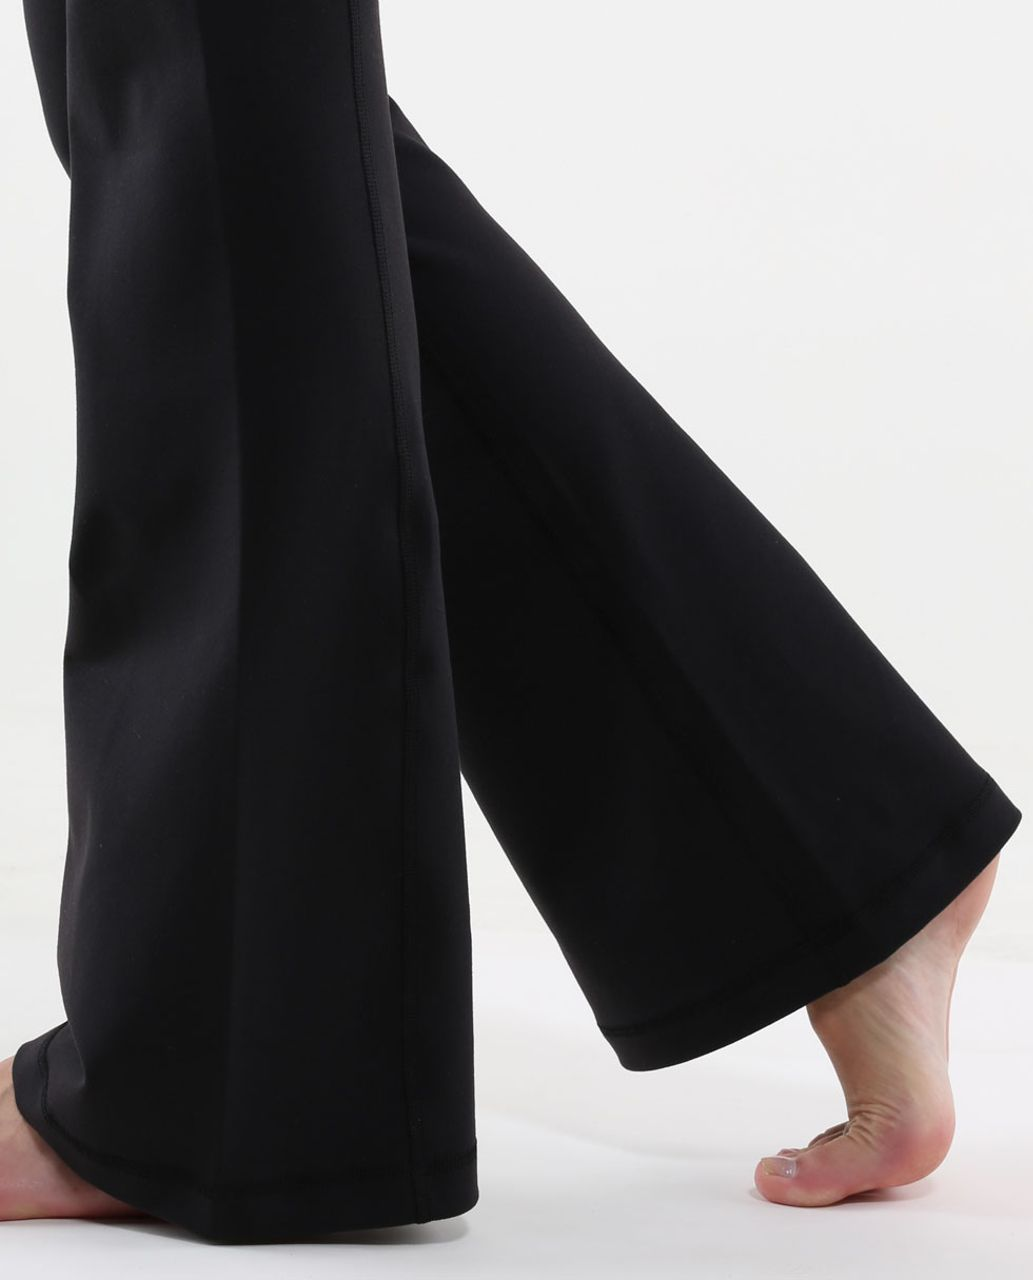 Lululemon Groove Pant (Regular) - Black / Twin Stripe Black / White